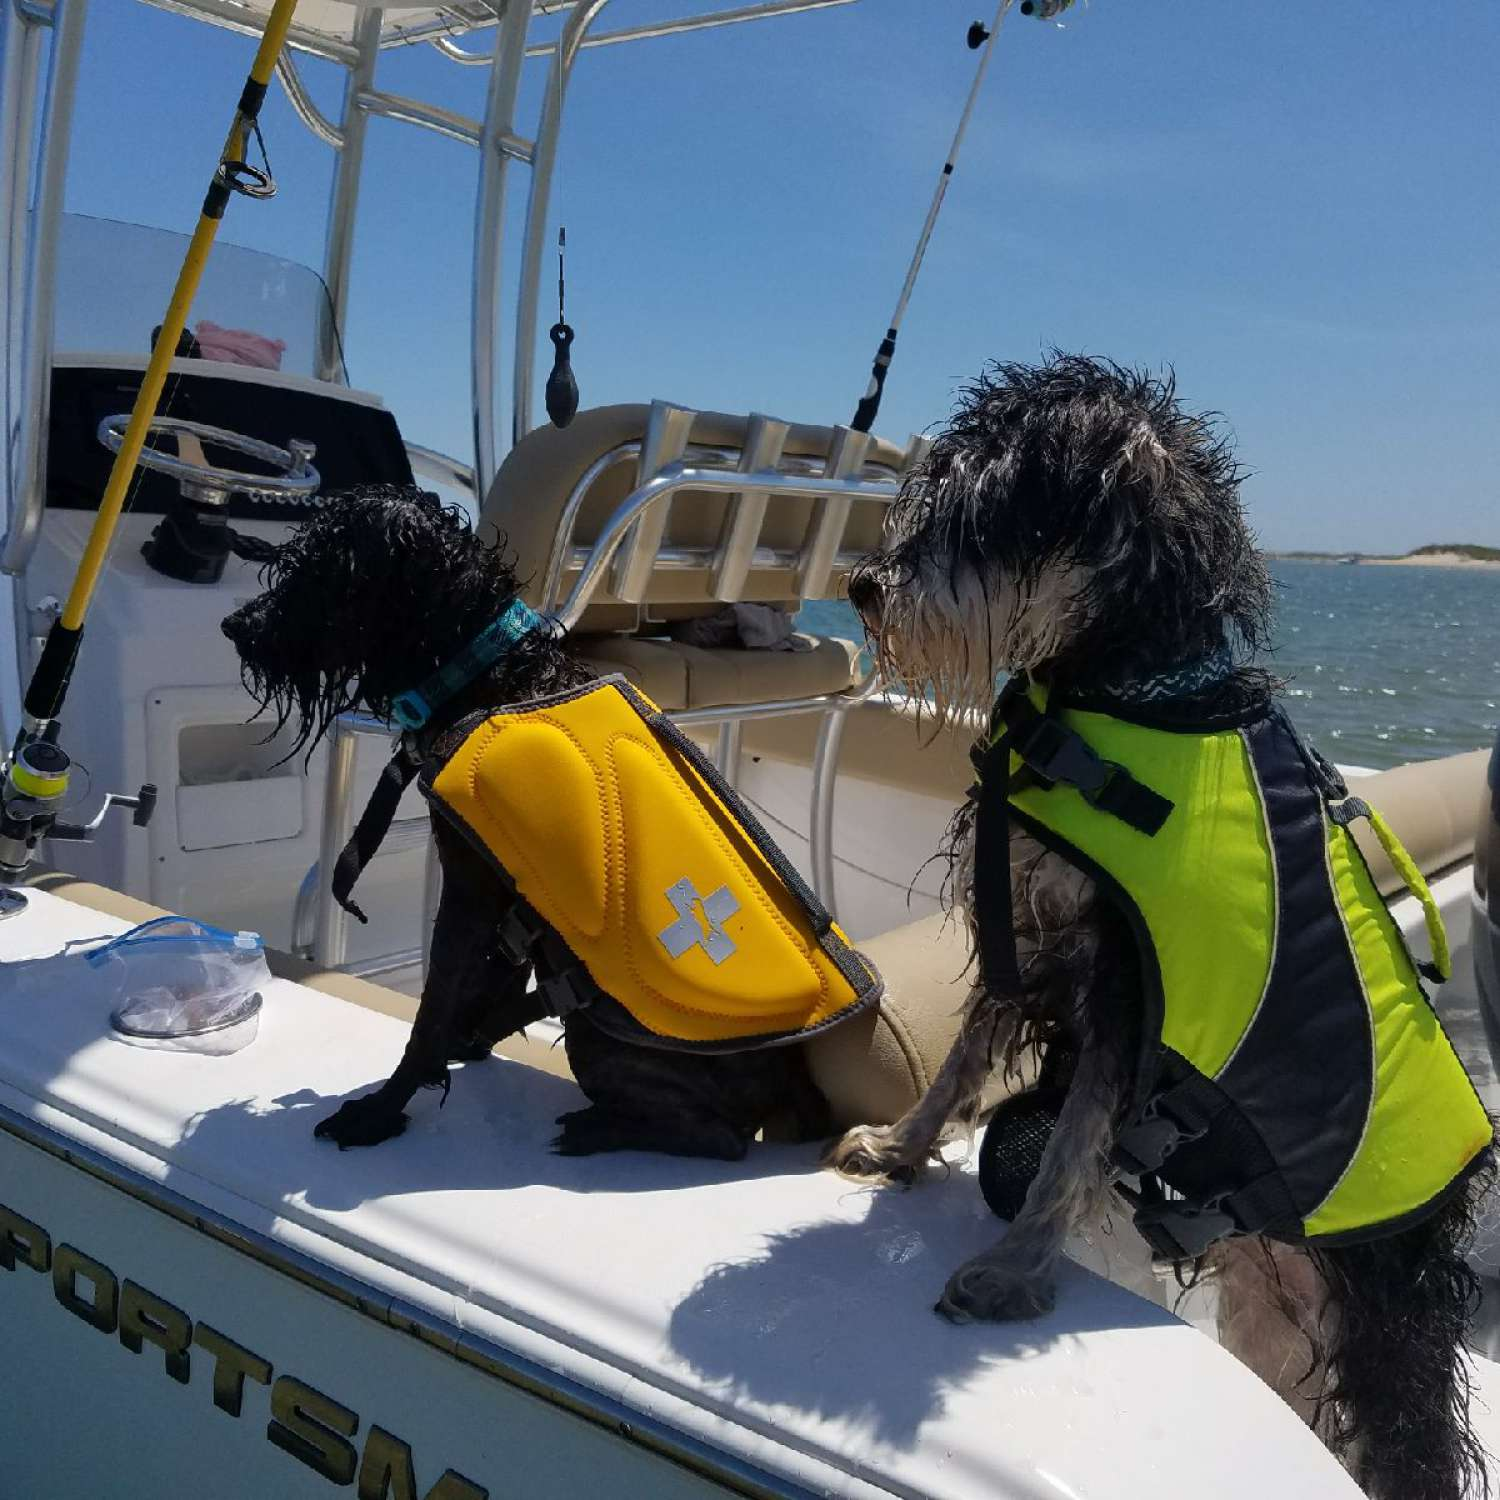 Title: Pups Enjoying The Boat - On board their Sportsman Heritage 211 Center Console - Location: Vanceboro, North Carolina. Participating in the Photo Contest #SportsmanJune2017